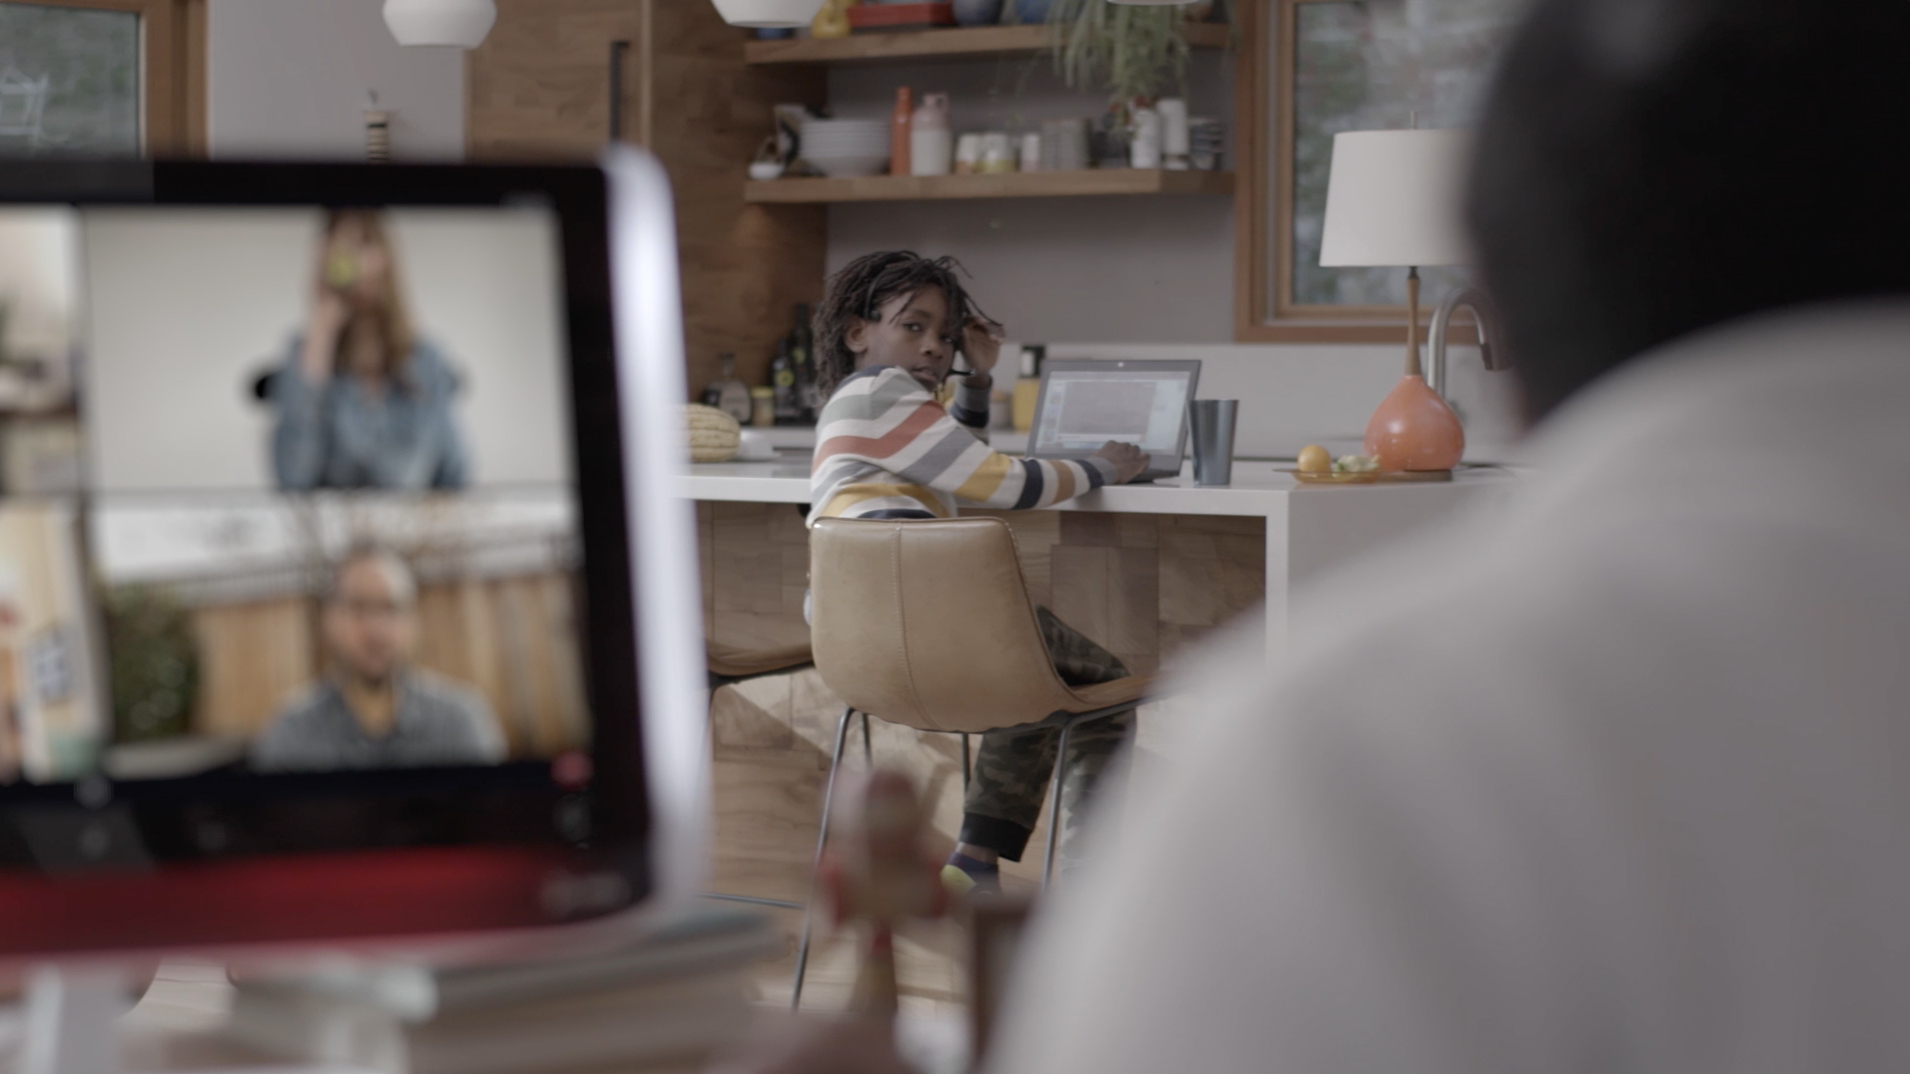 Virtual meeting with child in the background on a laptop computer